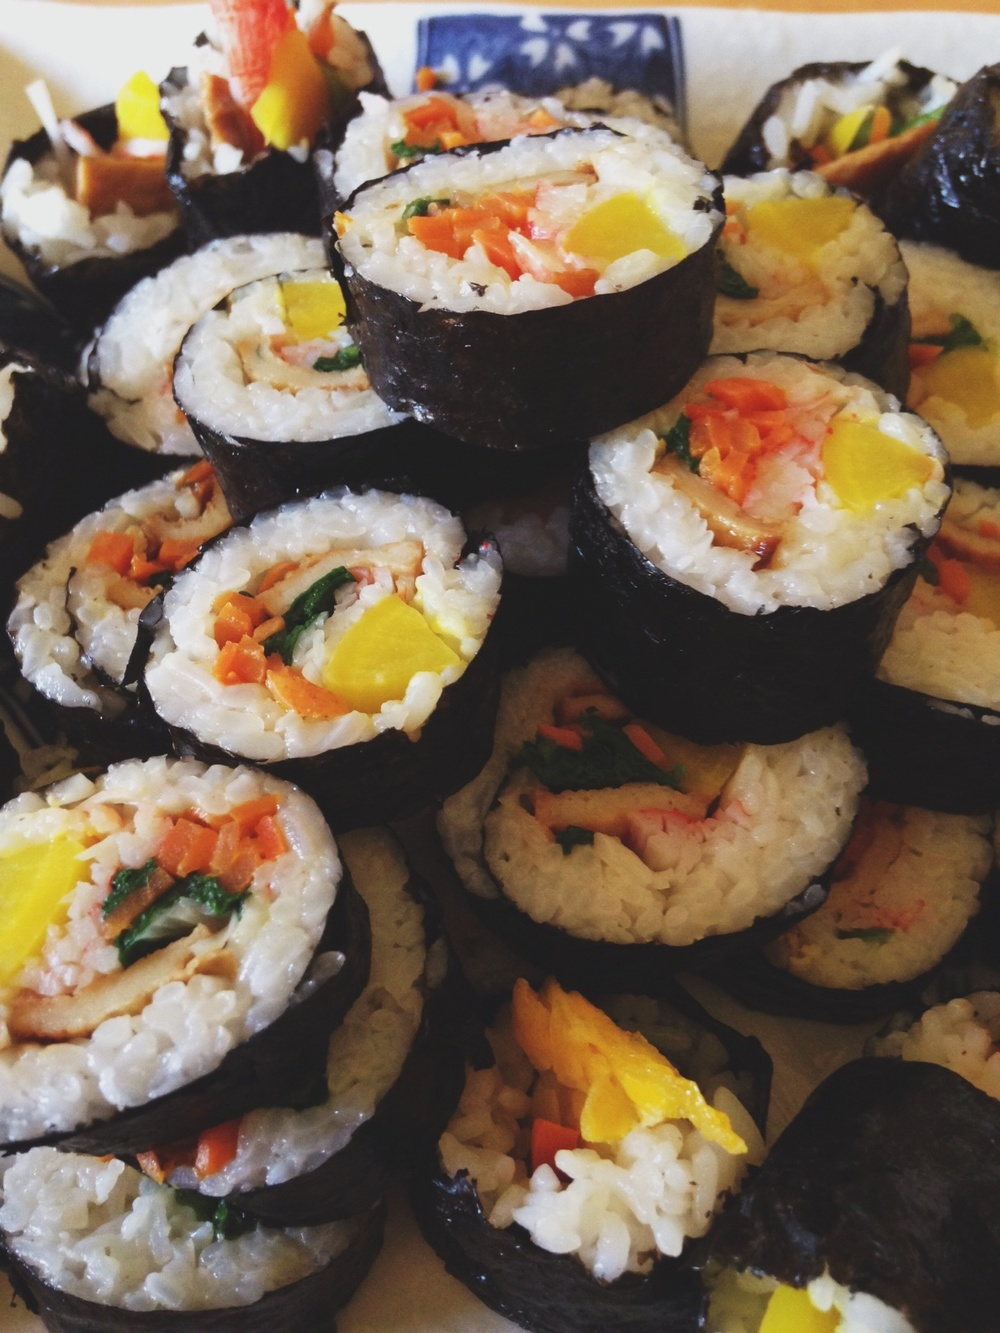 Kimbap my mother-in-law made for us during our visit to Virginia. Colorful mosaic.